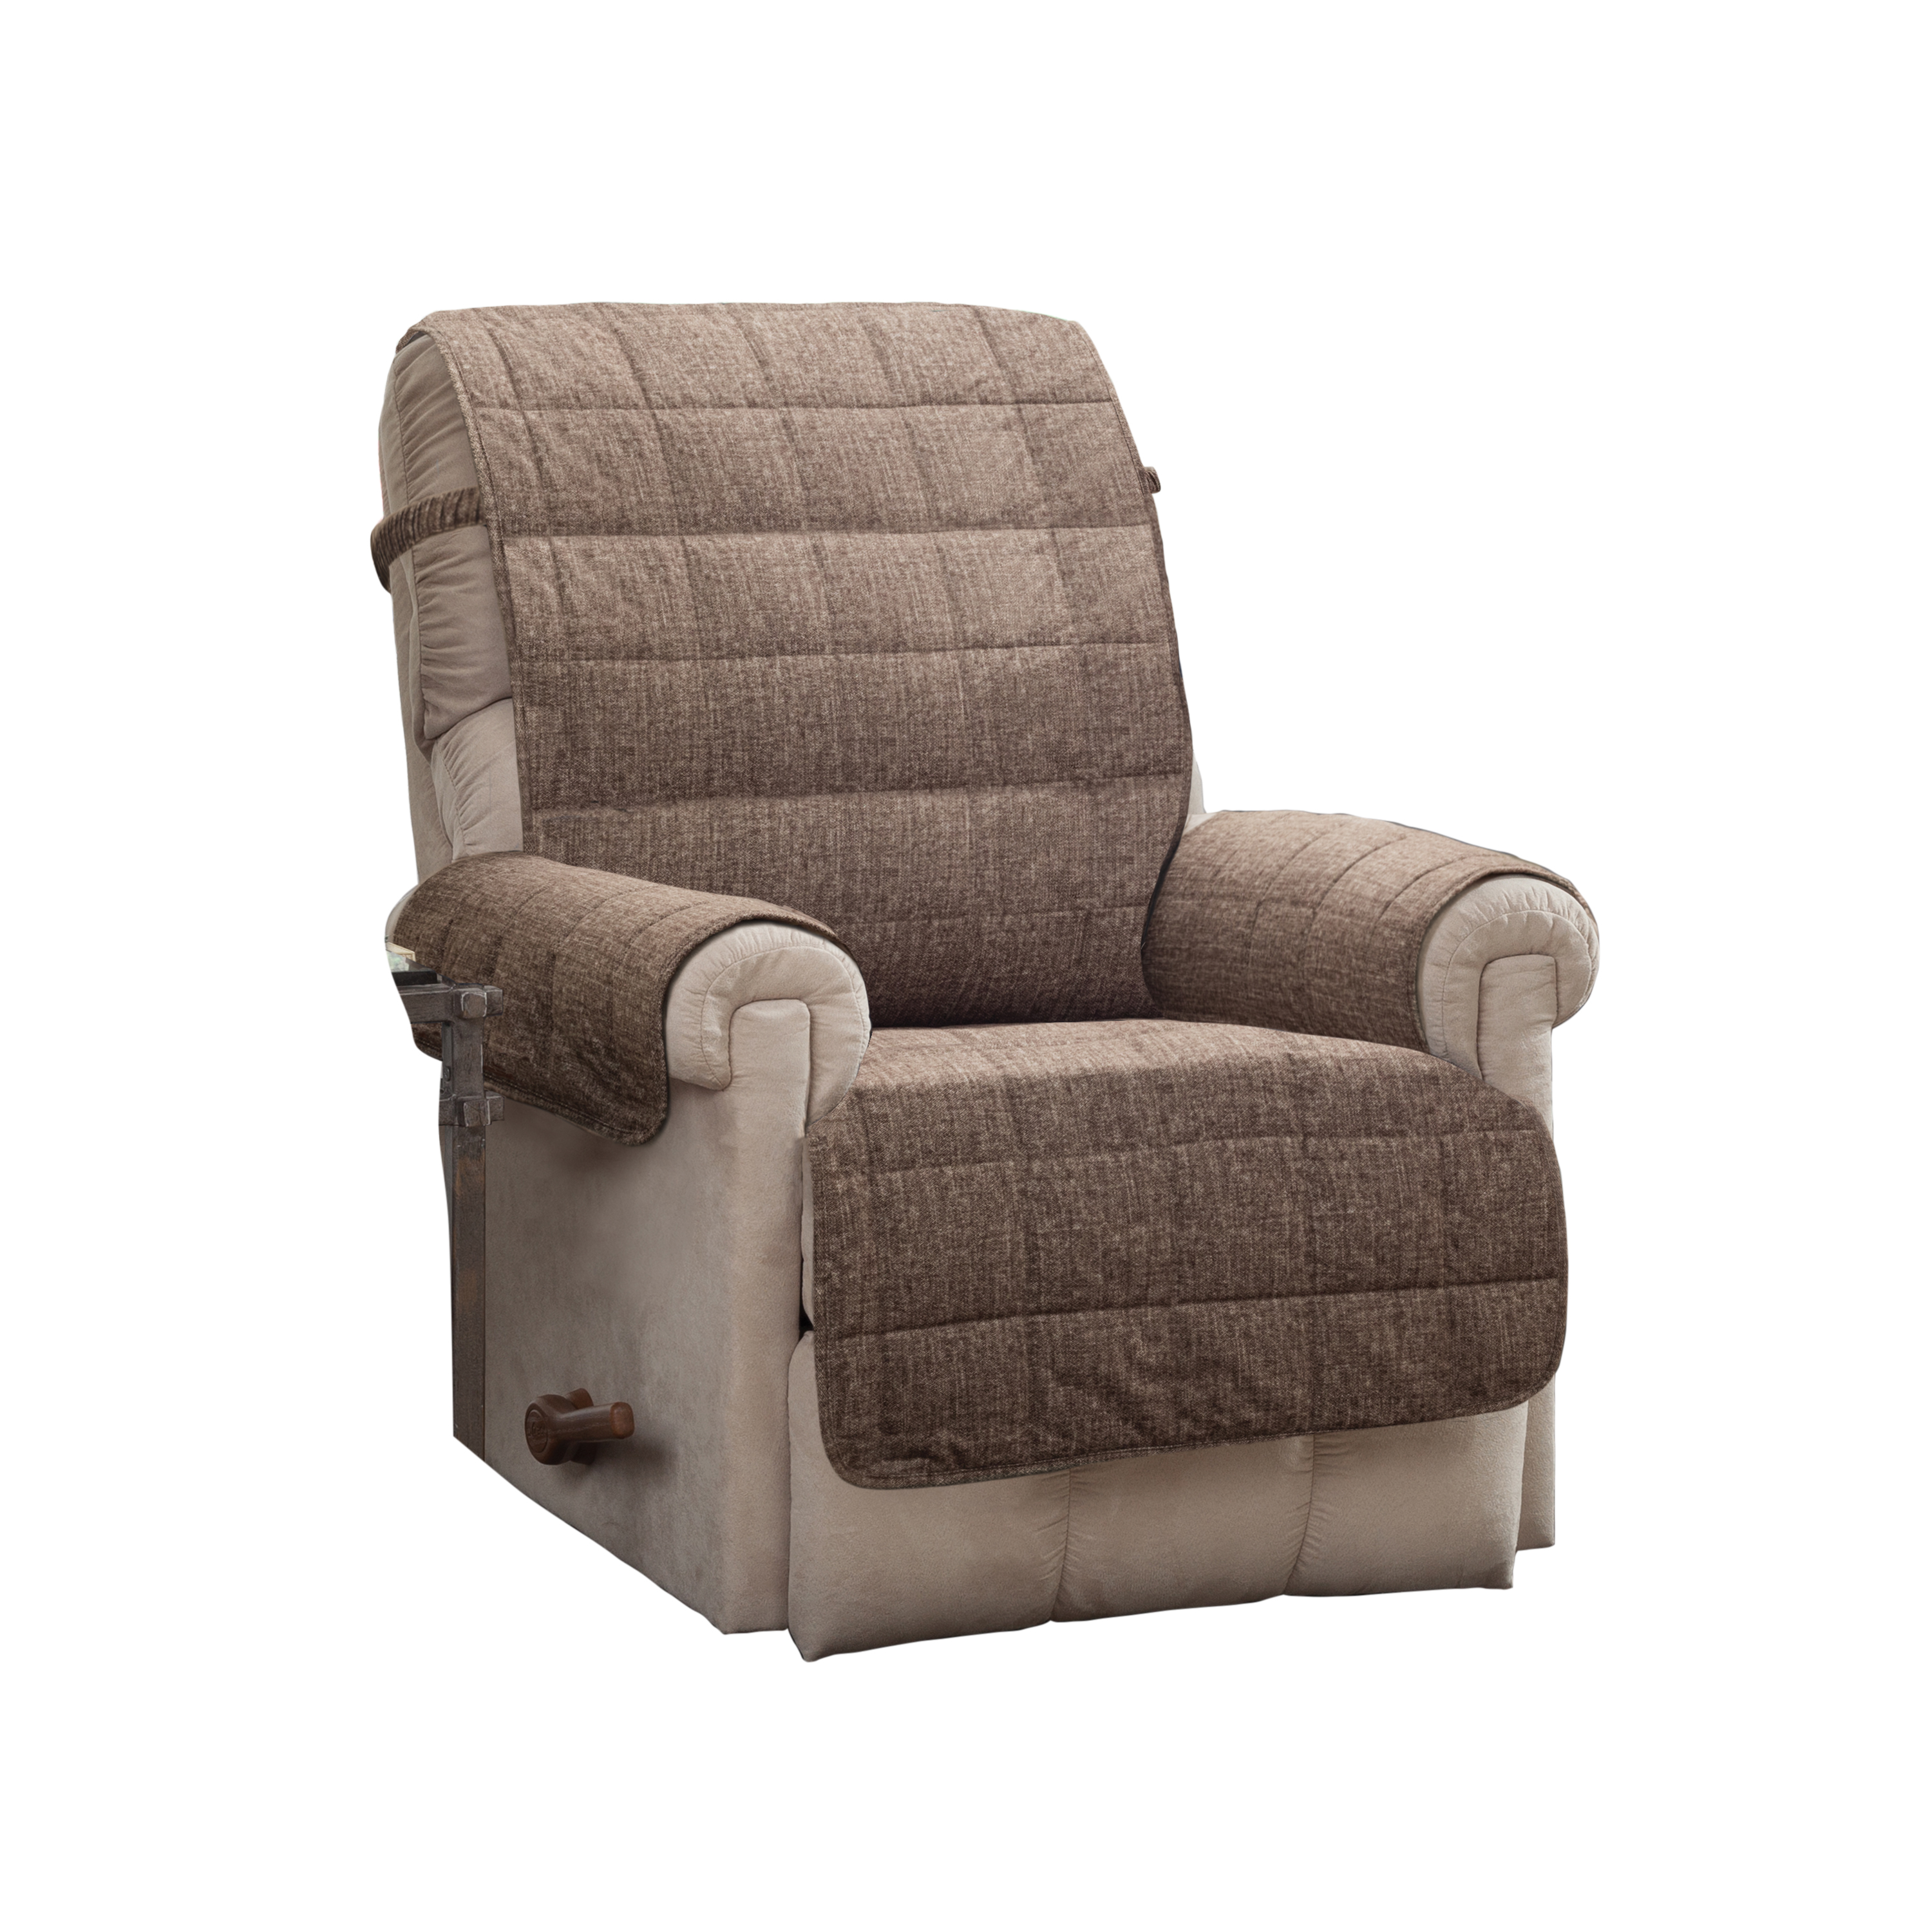 Innovative Textile Solutions Tyler Recliner Furniture Cover Slipcover